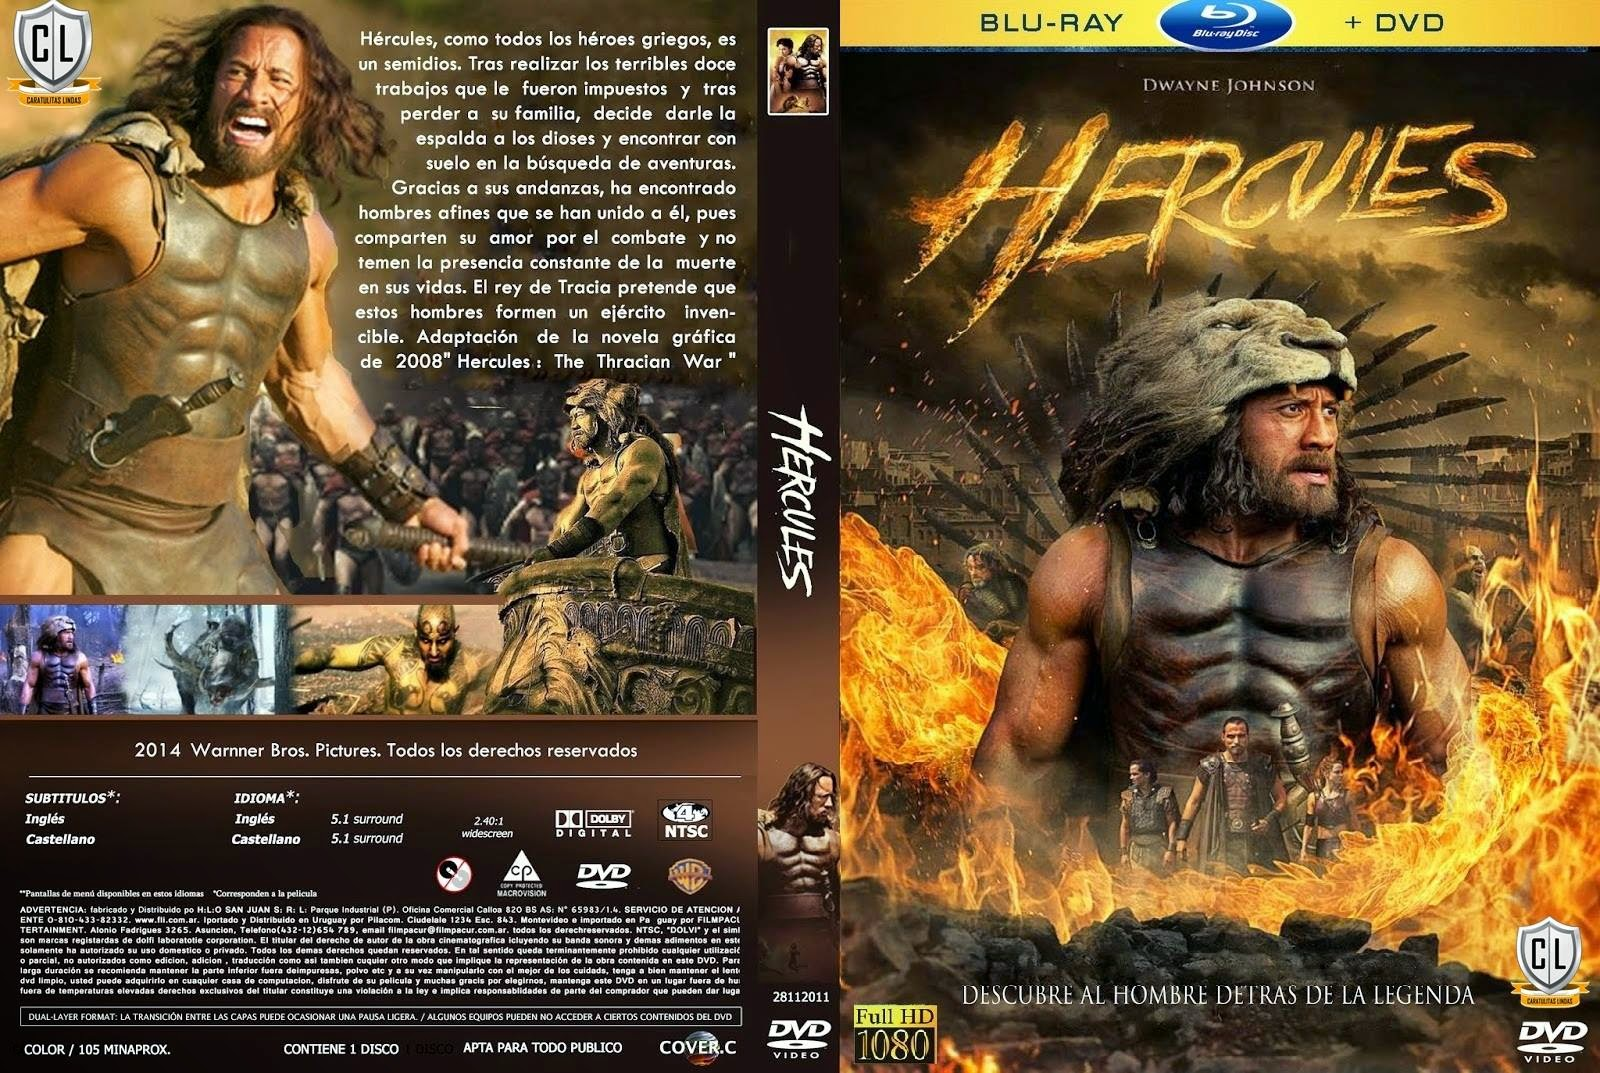 Hercules 2014  Rotten Tomatoes  Movie Trailers